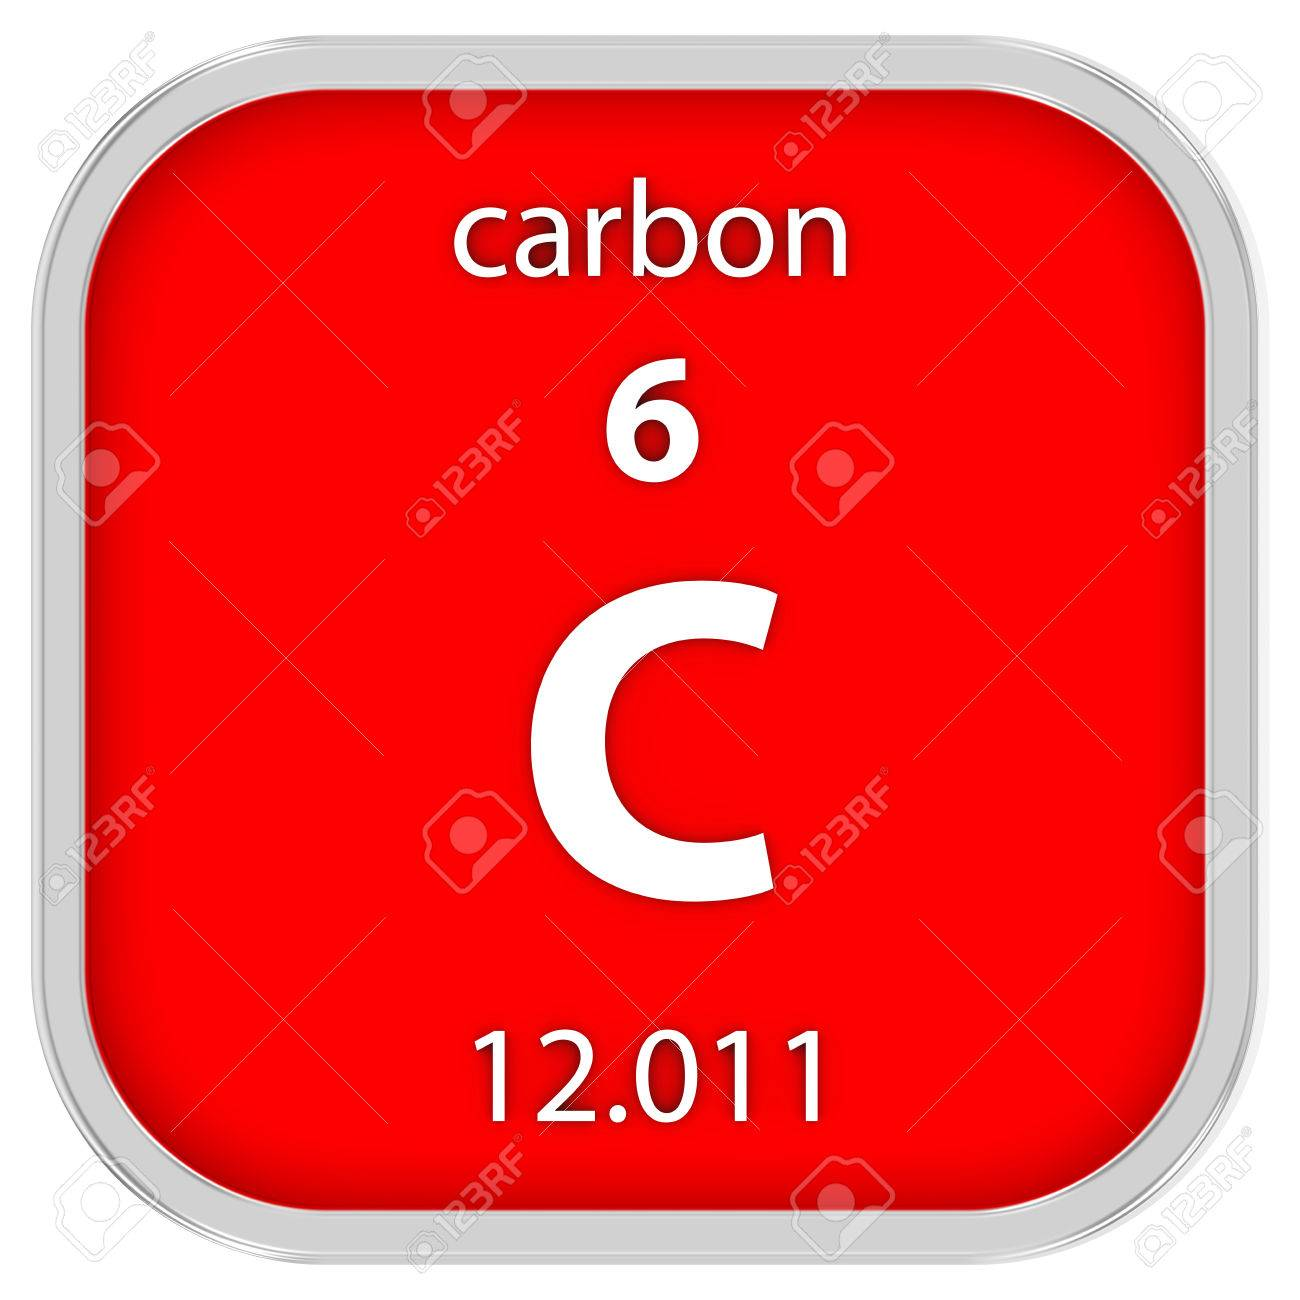 Carbon periodic table gallery periodic table images carbon monoxide symbol periodic table images periodic table images carbon periodic table image collections periodic table gamestrikefo Images